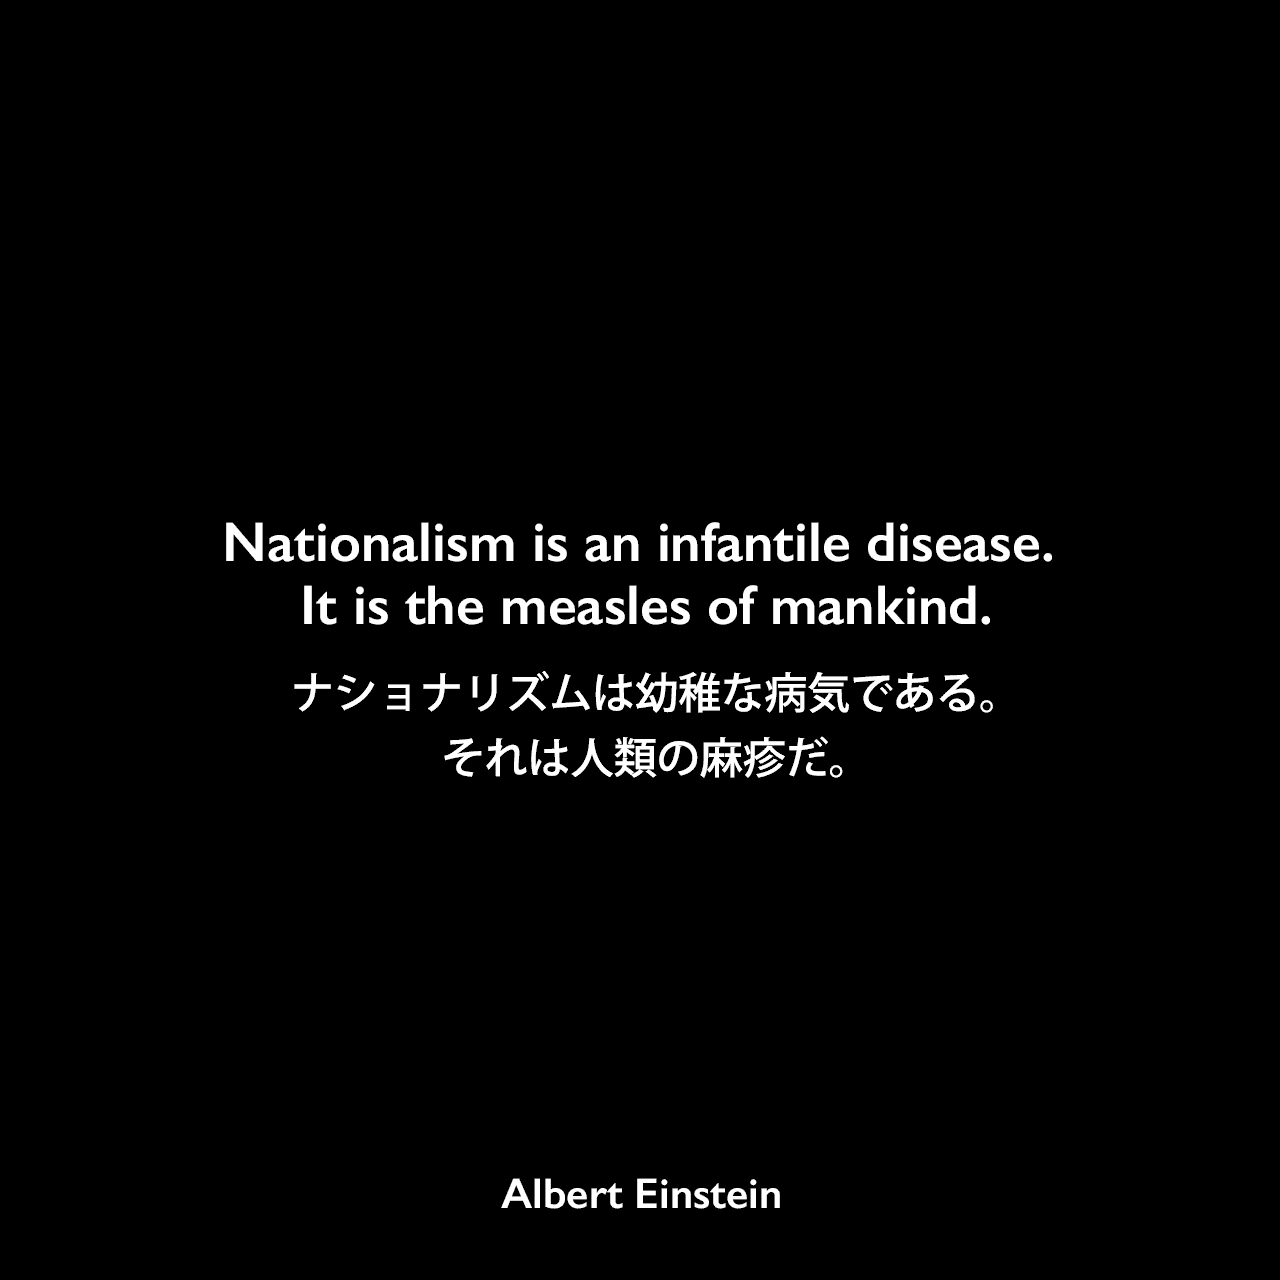 Nationalism is an infantile disease. It is the measles of mankind.ナショナリズムは幼稚な病気である。それは人類の麻疹だ。- ジョージ・シルヴェスター・ヴィエレックとのインタビュー(1929年)よりAlbert Einstein